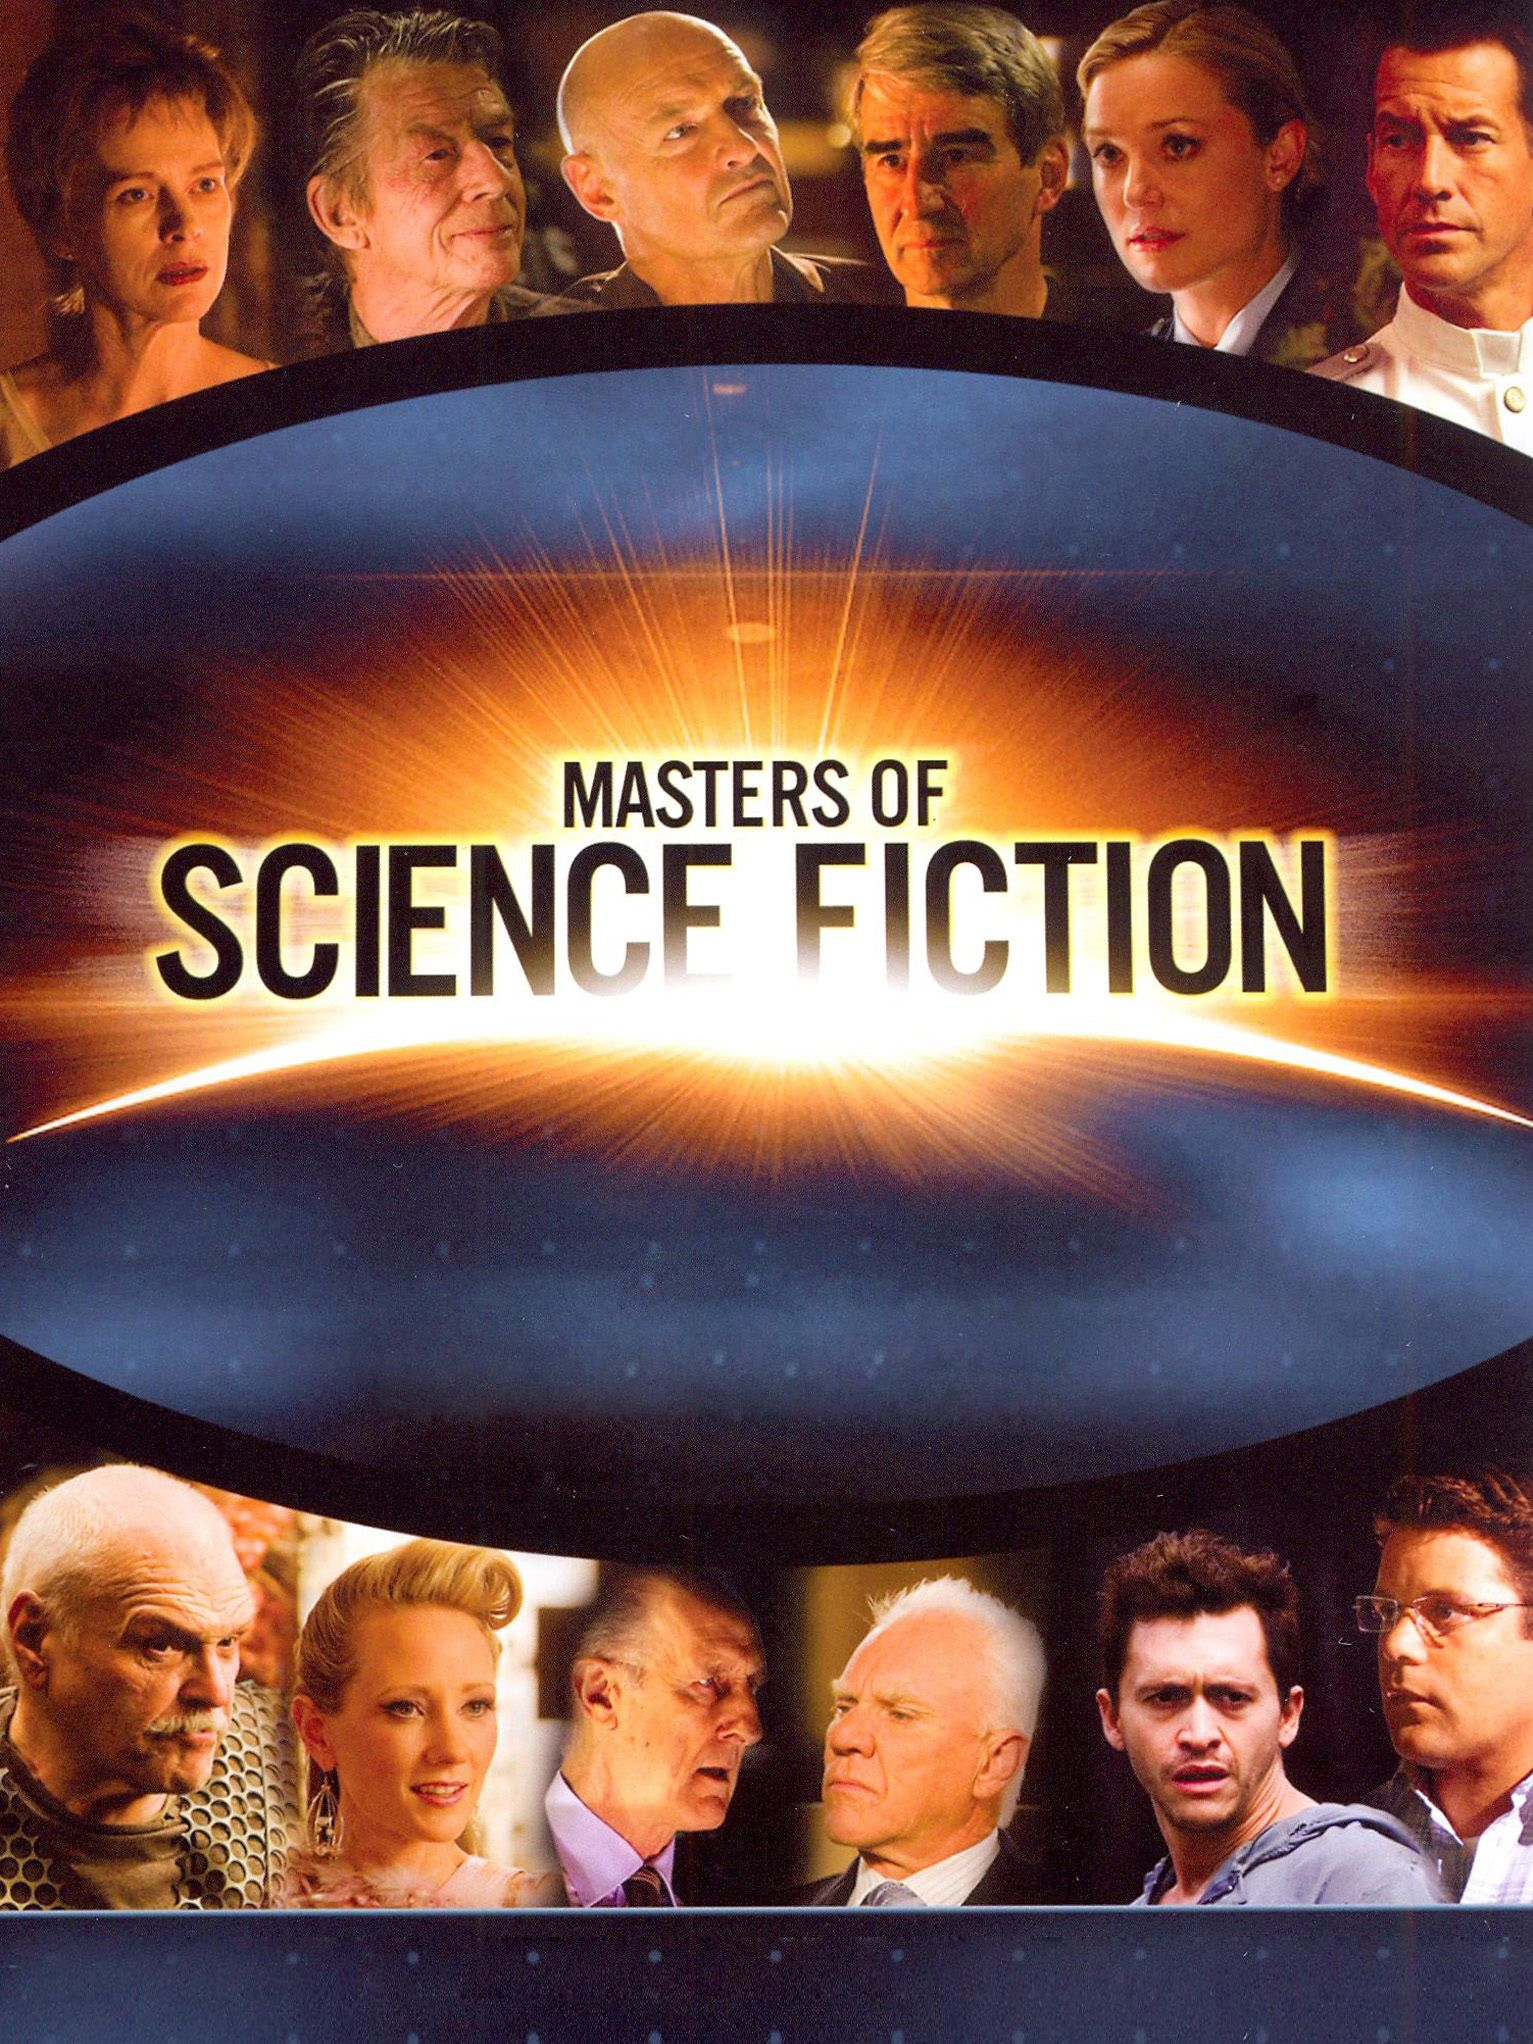 Masters of Science Fiction Saison 1 FRENCH HDLight 720p HDTV